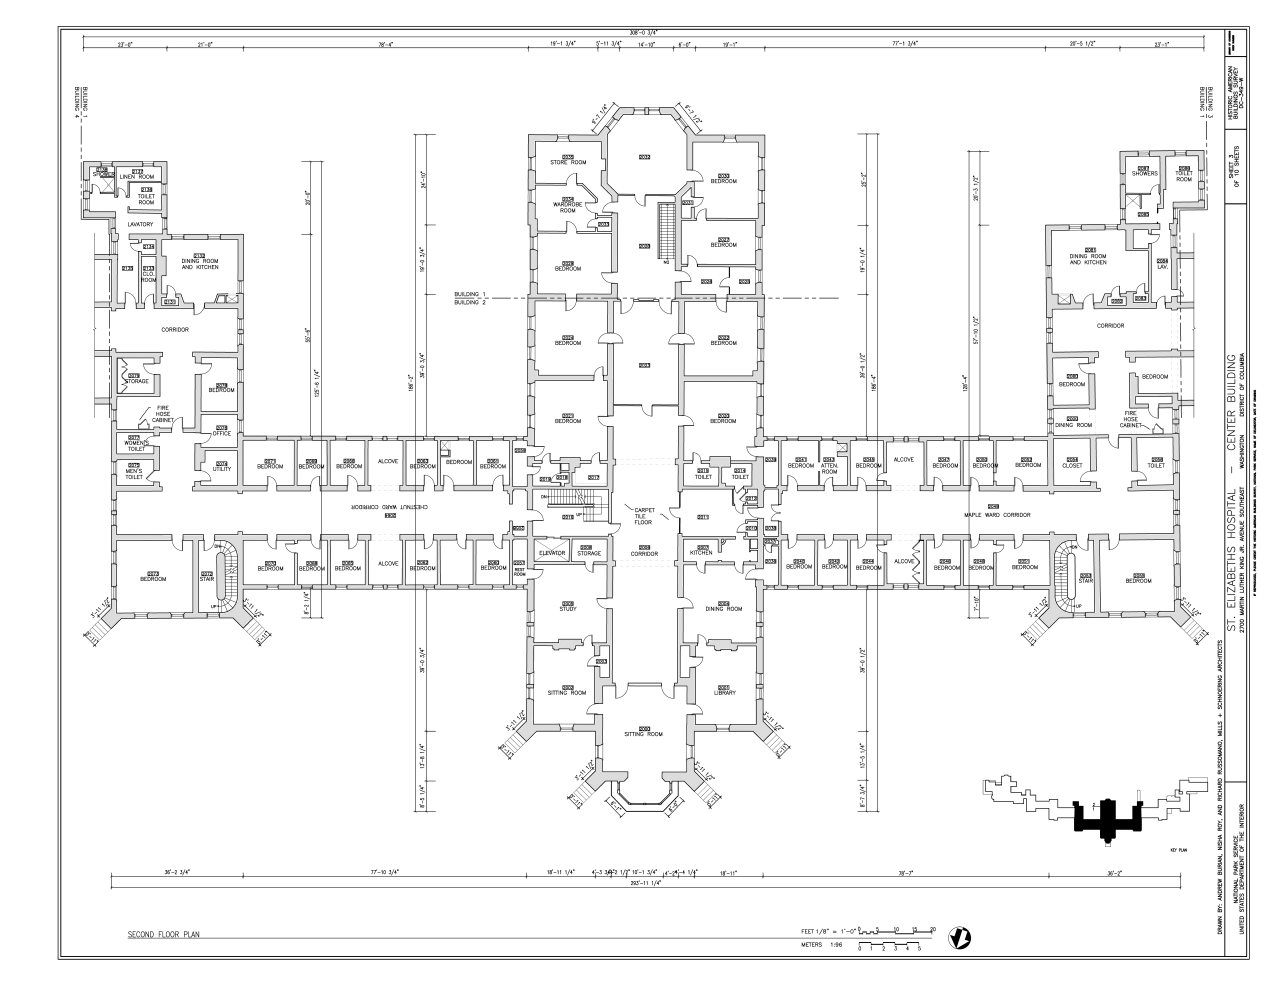 File second floor plan st elizabeths hospital center building 539 559 cedar drive for Who designed the basic plan for washington dc